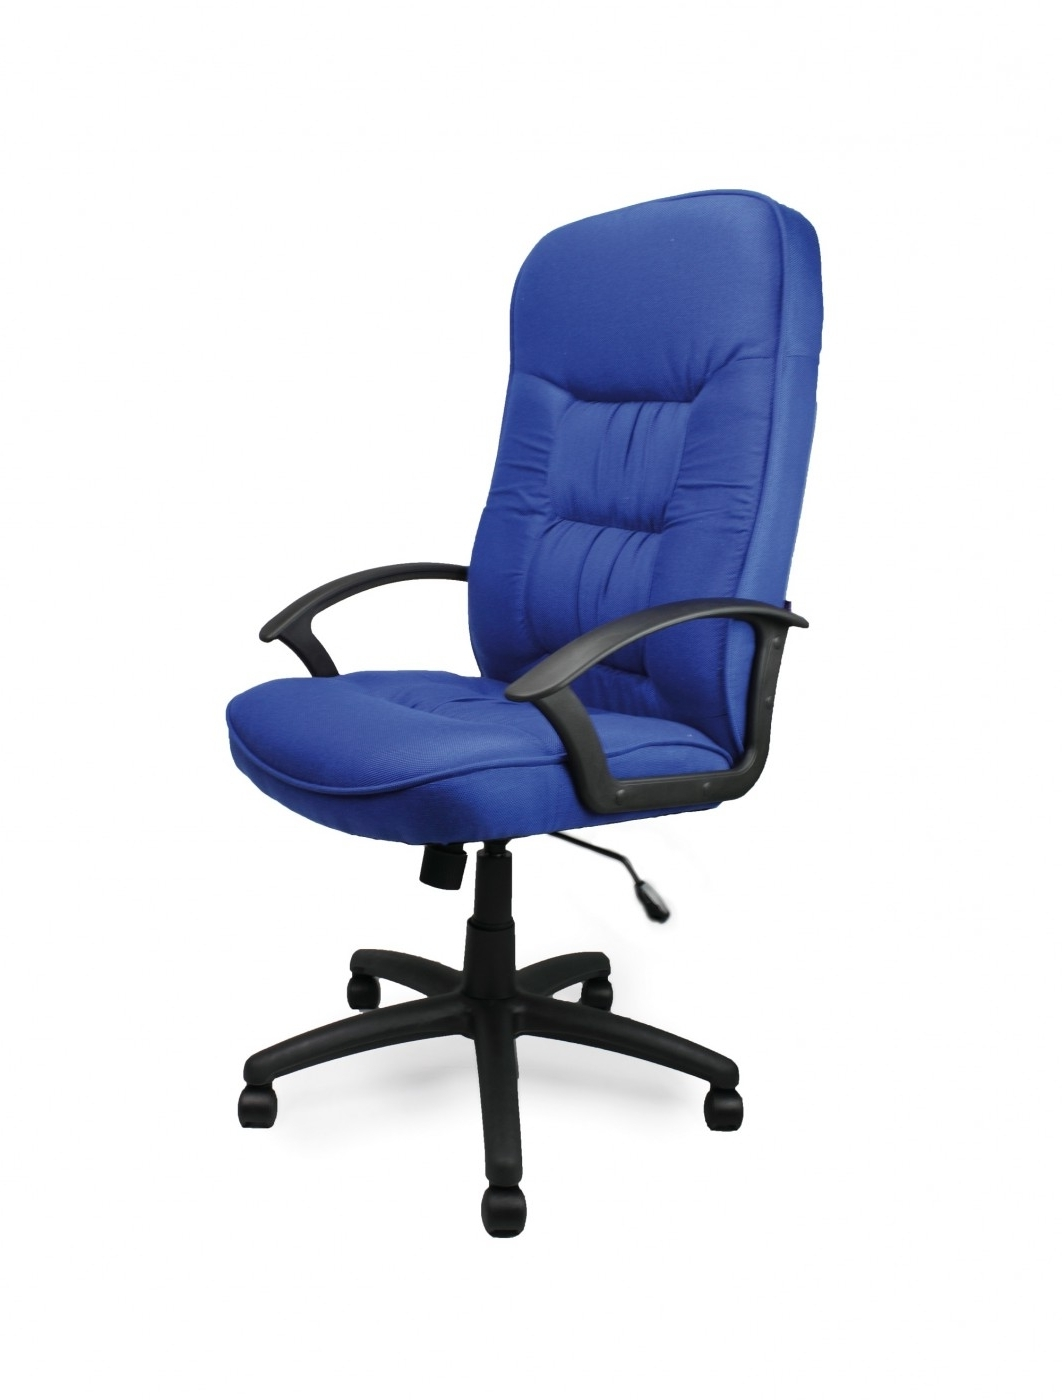 Coniston Fabric High Back Executive Office Chair 6062Atgf (View 4 of 20)